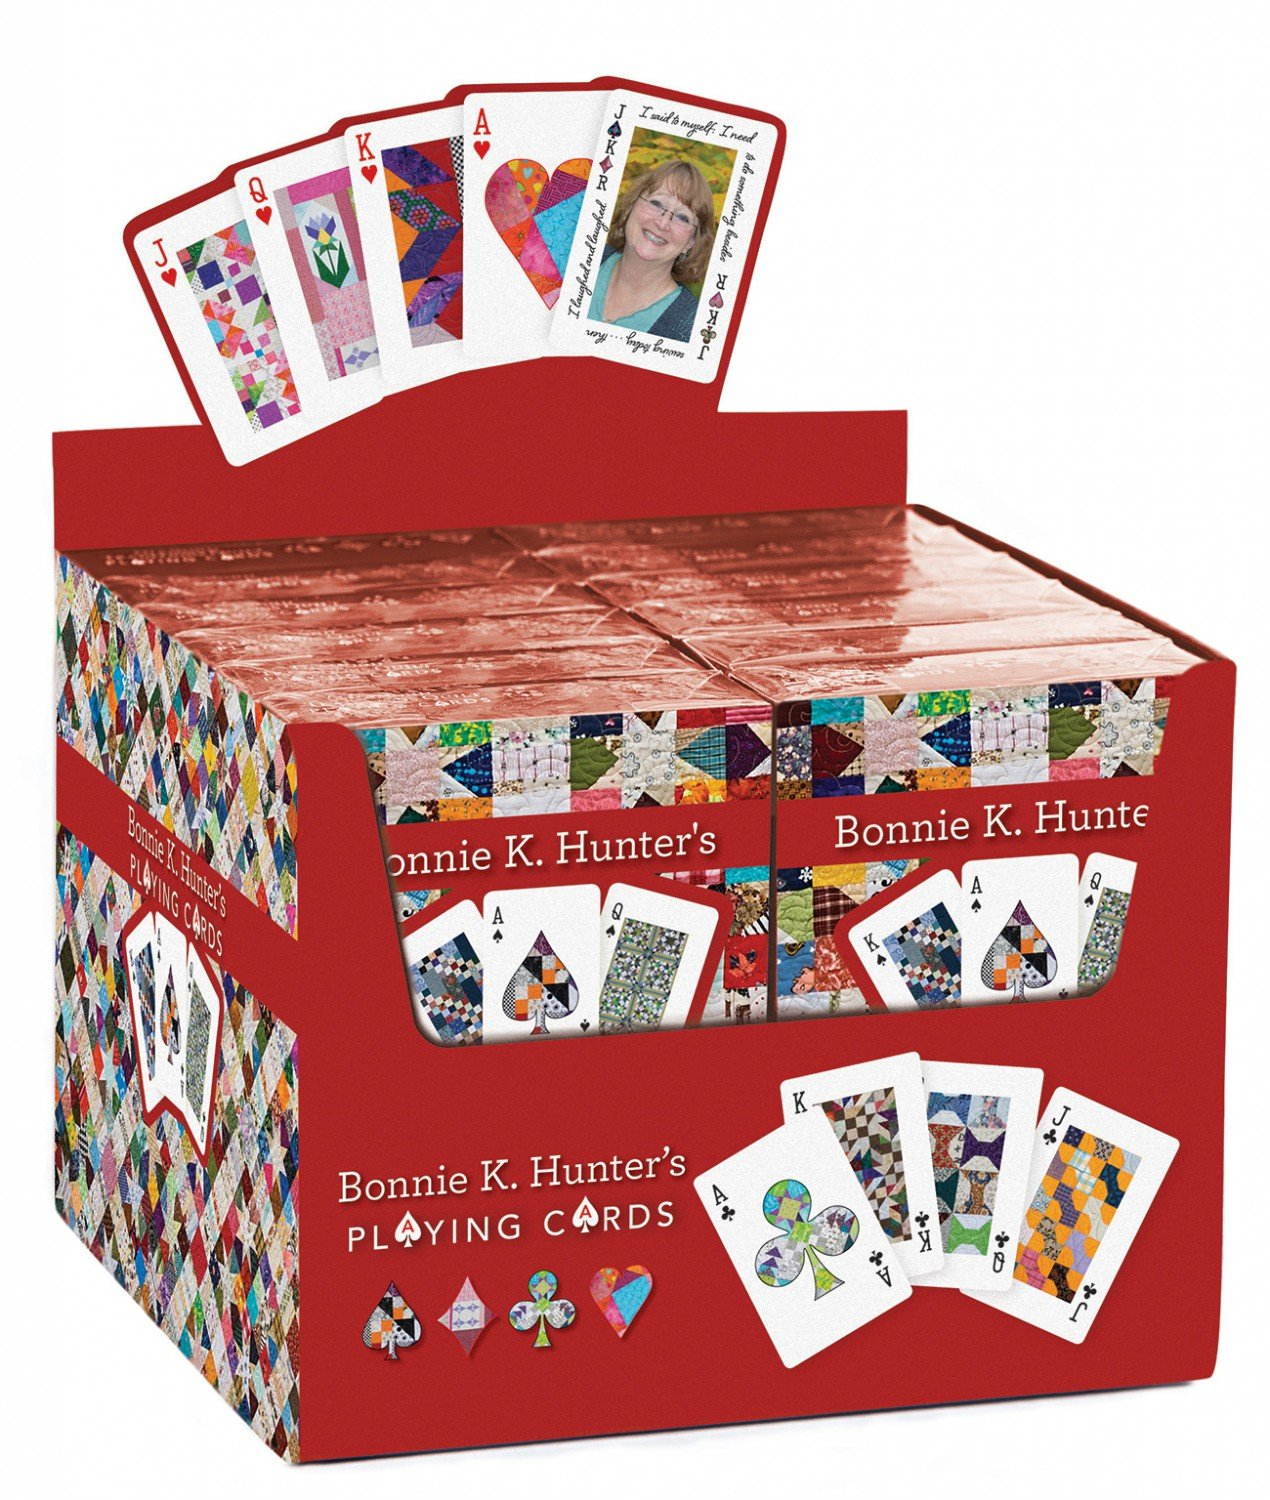 Bonnie Hunter's Playing Cards